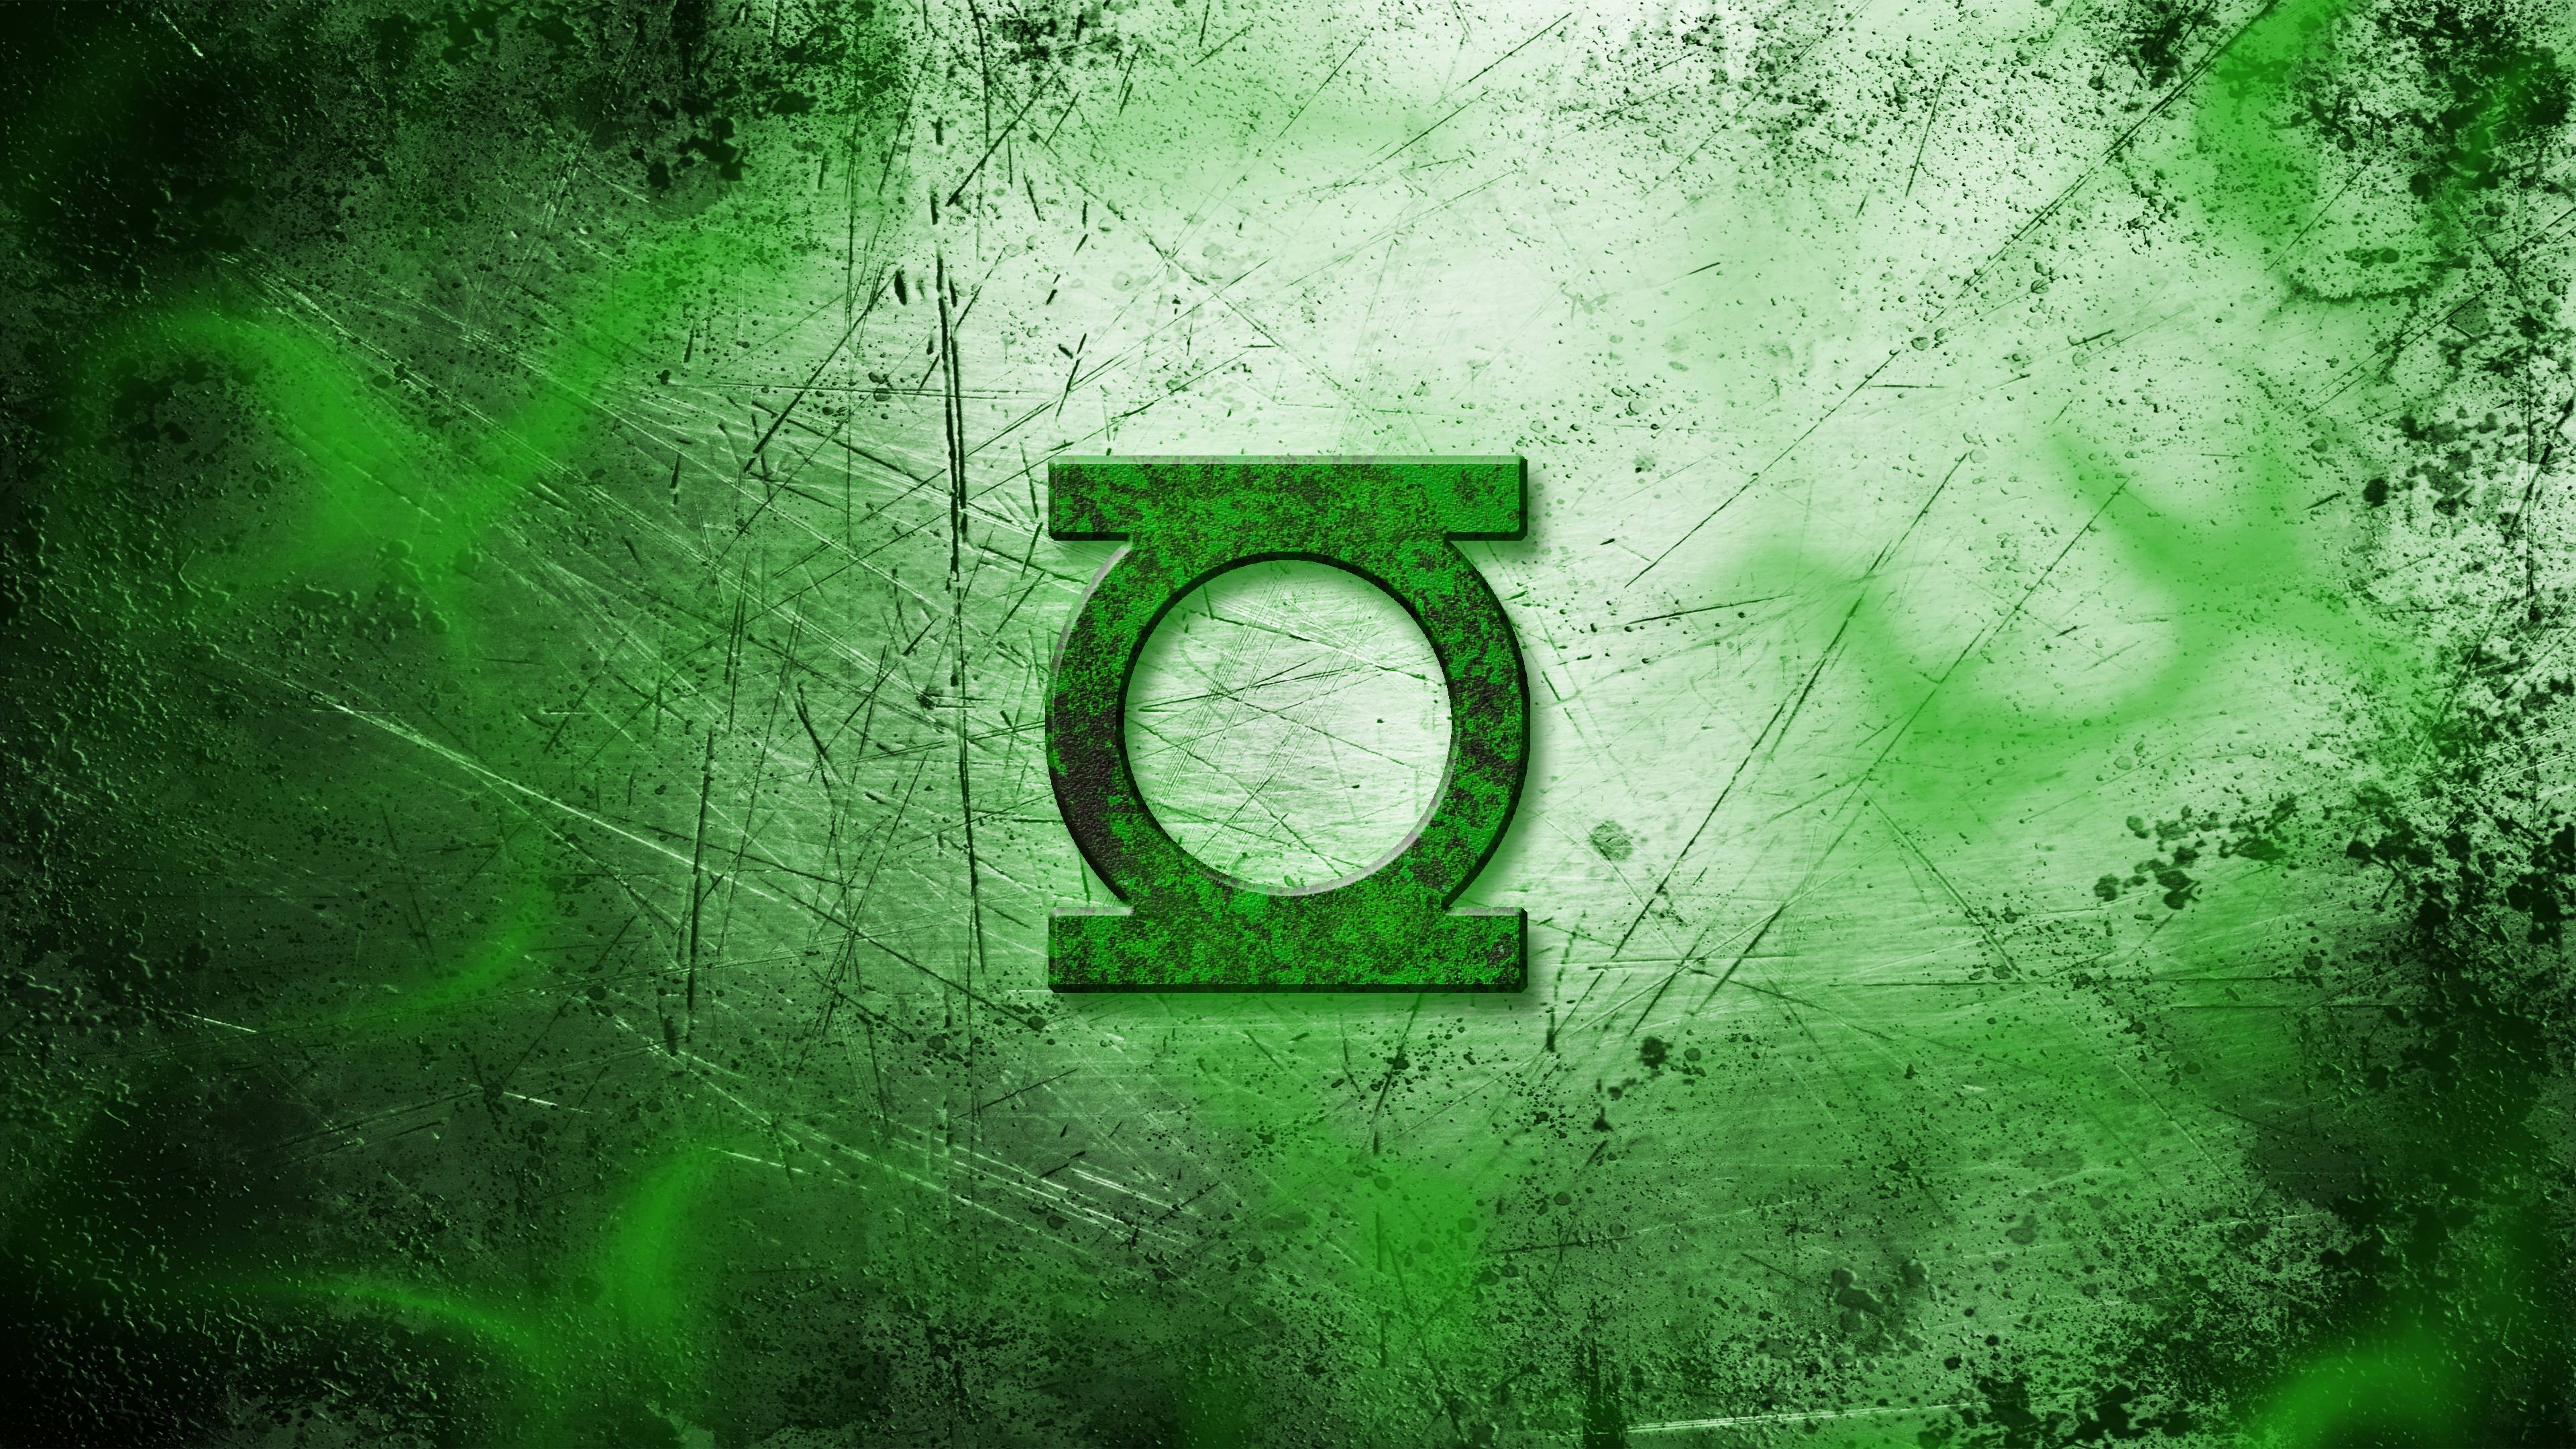 Green Lantern Computer Wallpapers Desktop Backgrounds 3840x2160 3840x2160